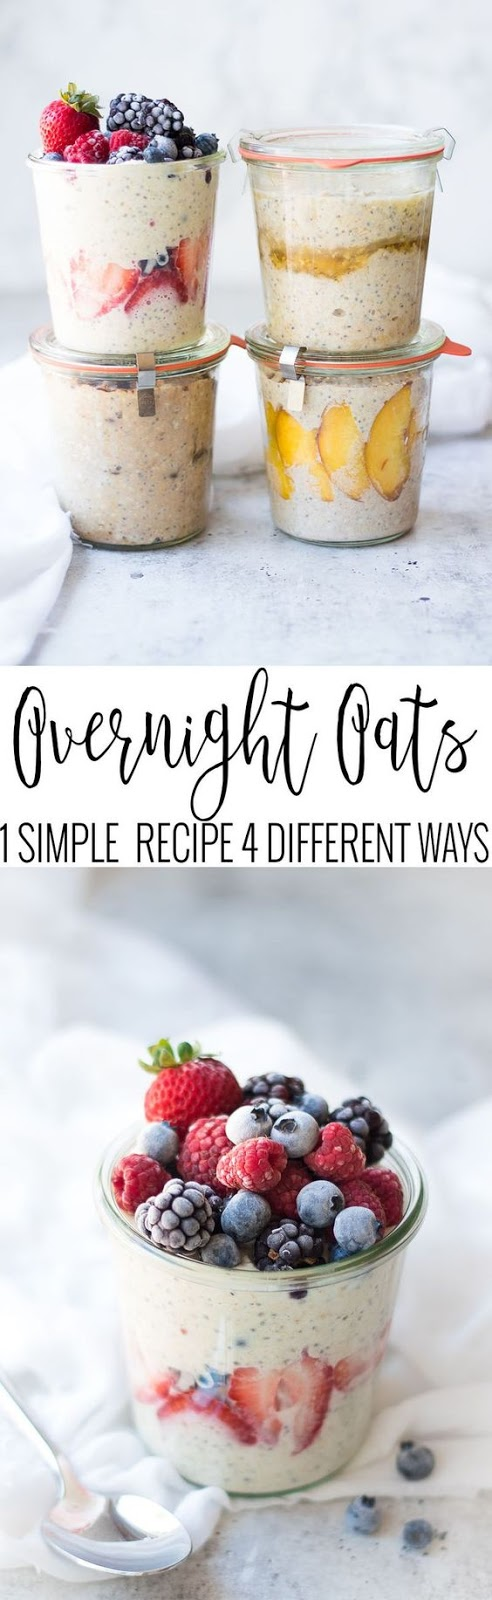 OVERNIGHT OATS 4 DIFFERENT WAYS